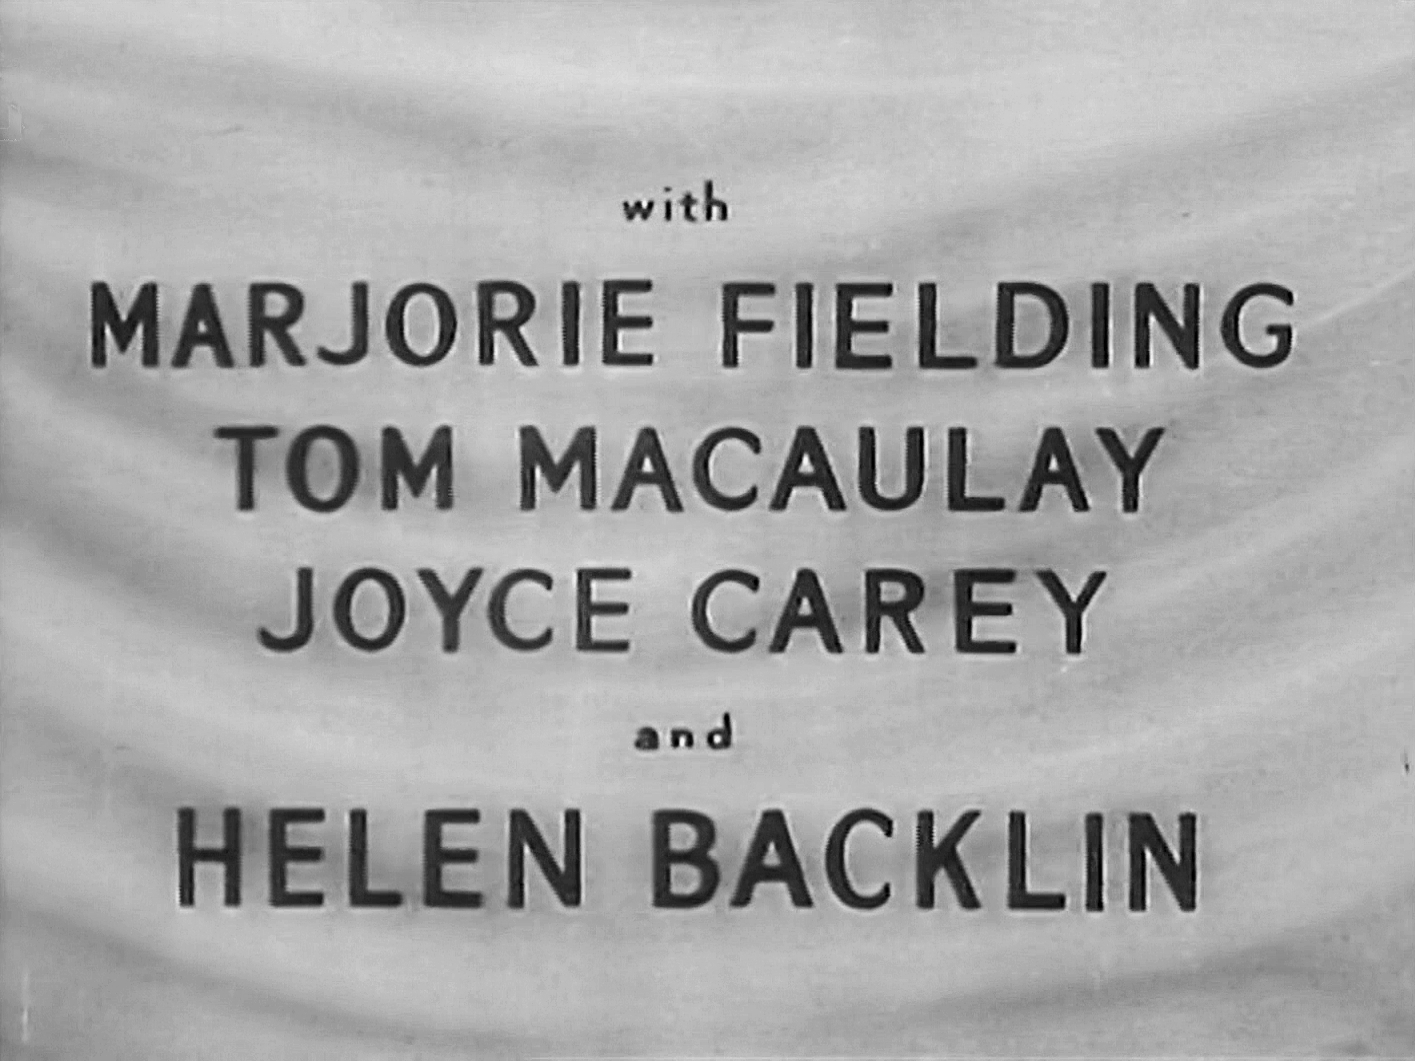 Main title from The Chiltern Hundreds (1949) (5). Marjorie Fielding, Tom Macaulay, Joyce Carey, Helen Backlin